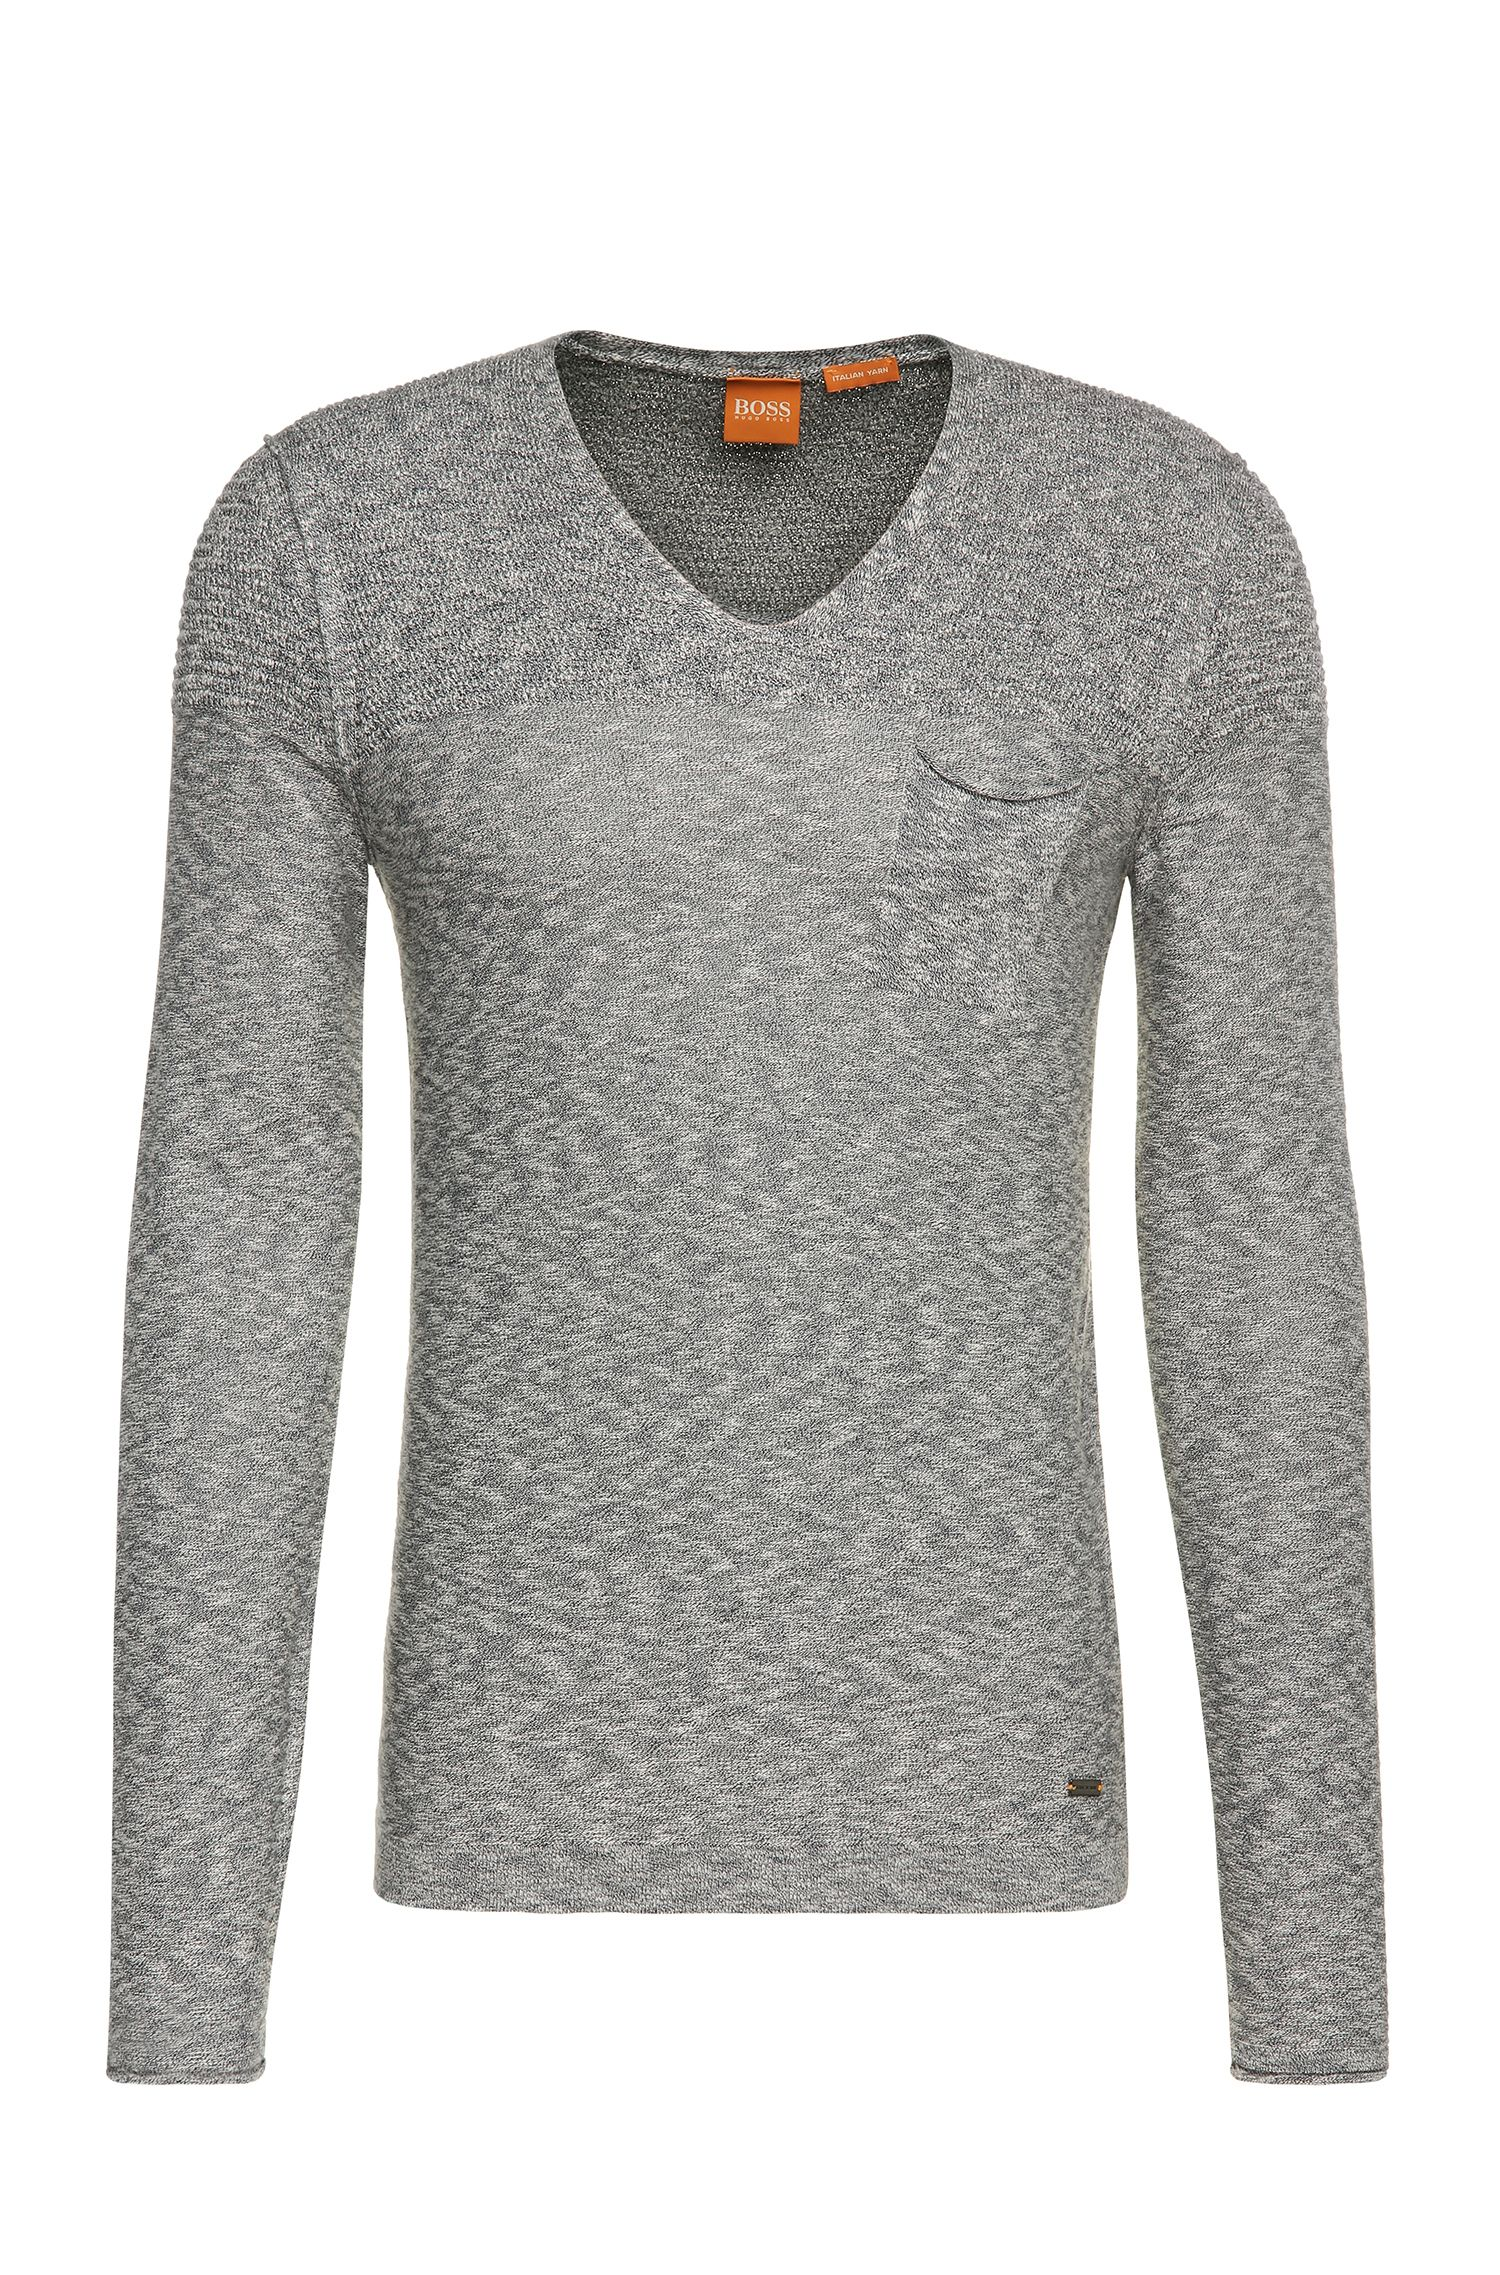 Knitwear sweater in cotton blend with viscose: 'Abramut'